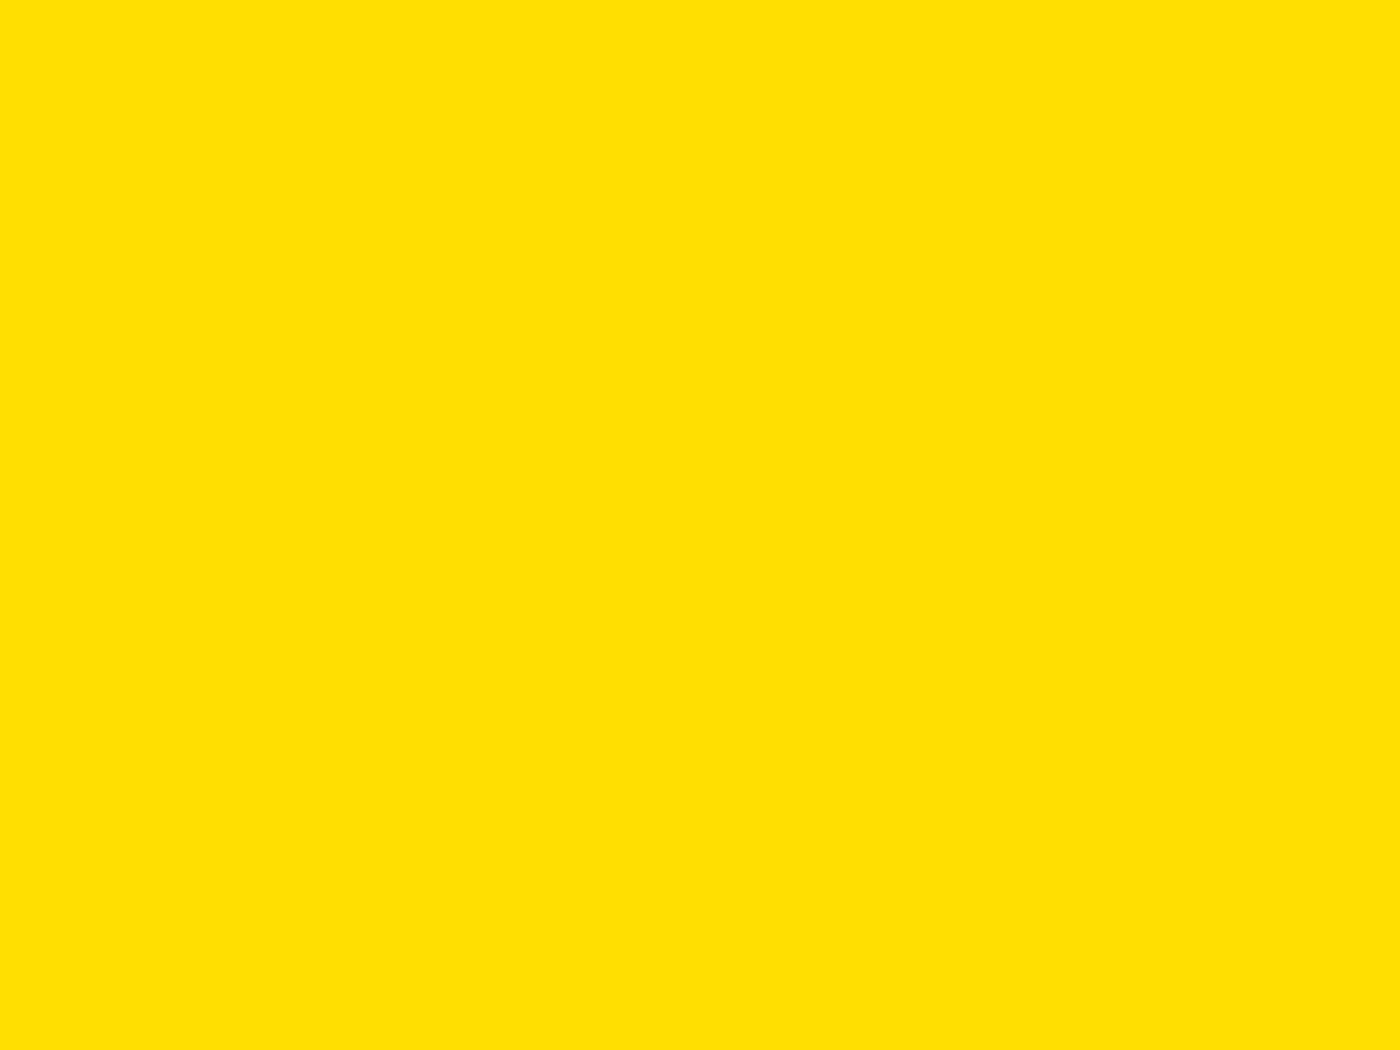 1400x1050 Yellow Pantone Solid Color Background